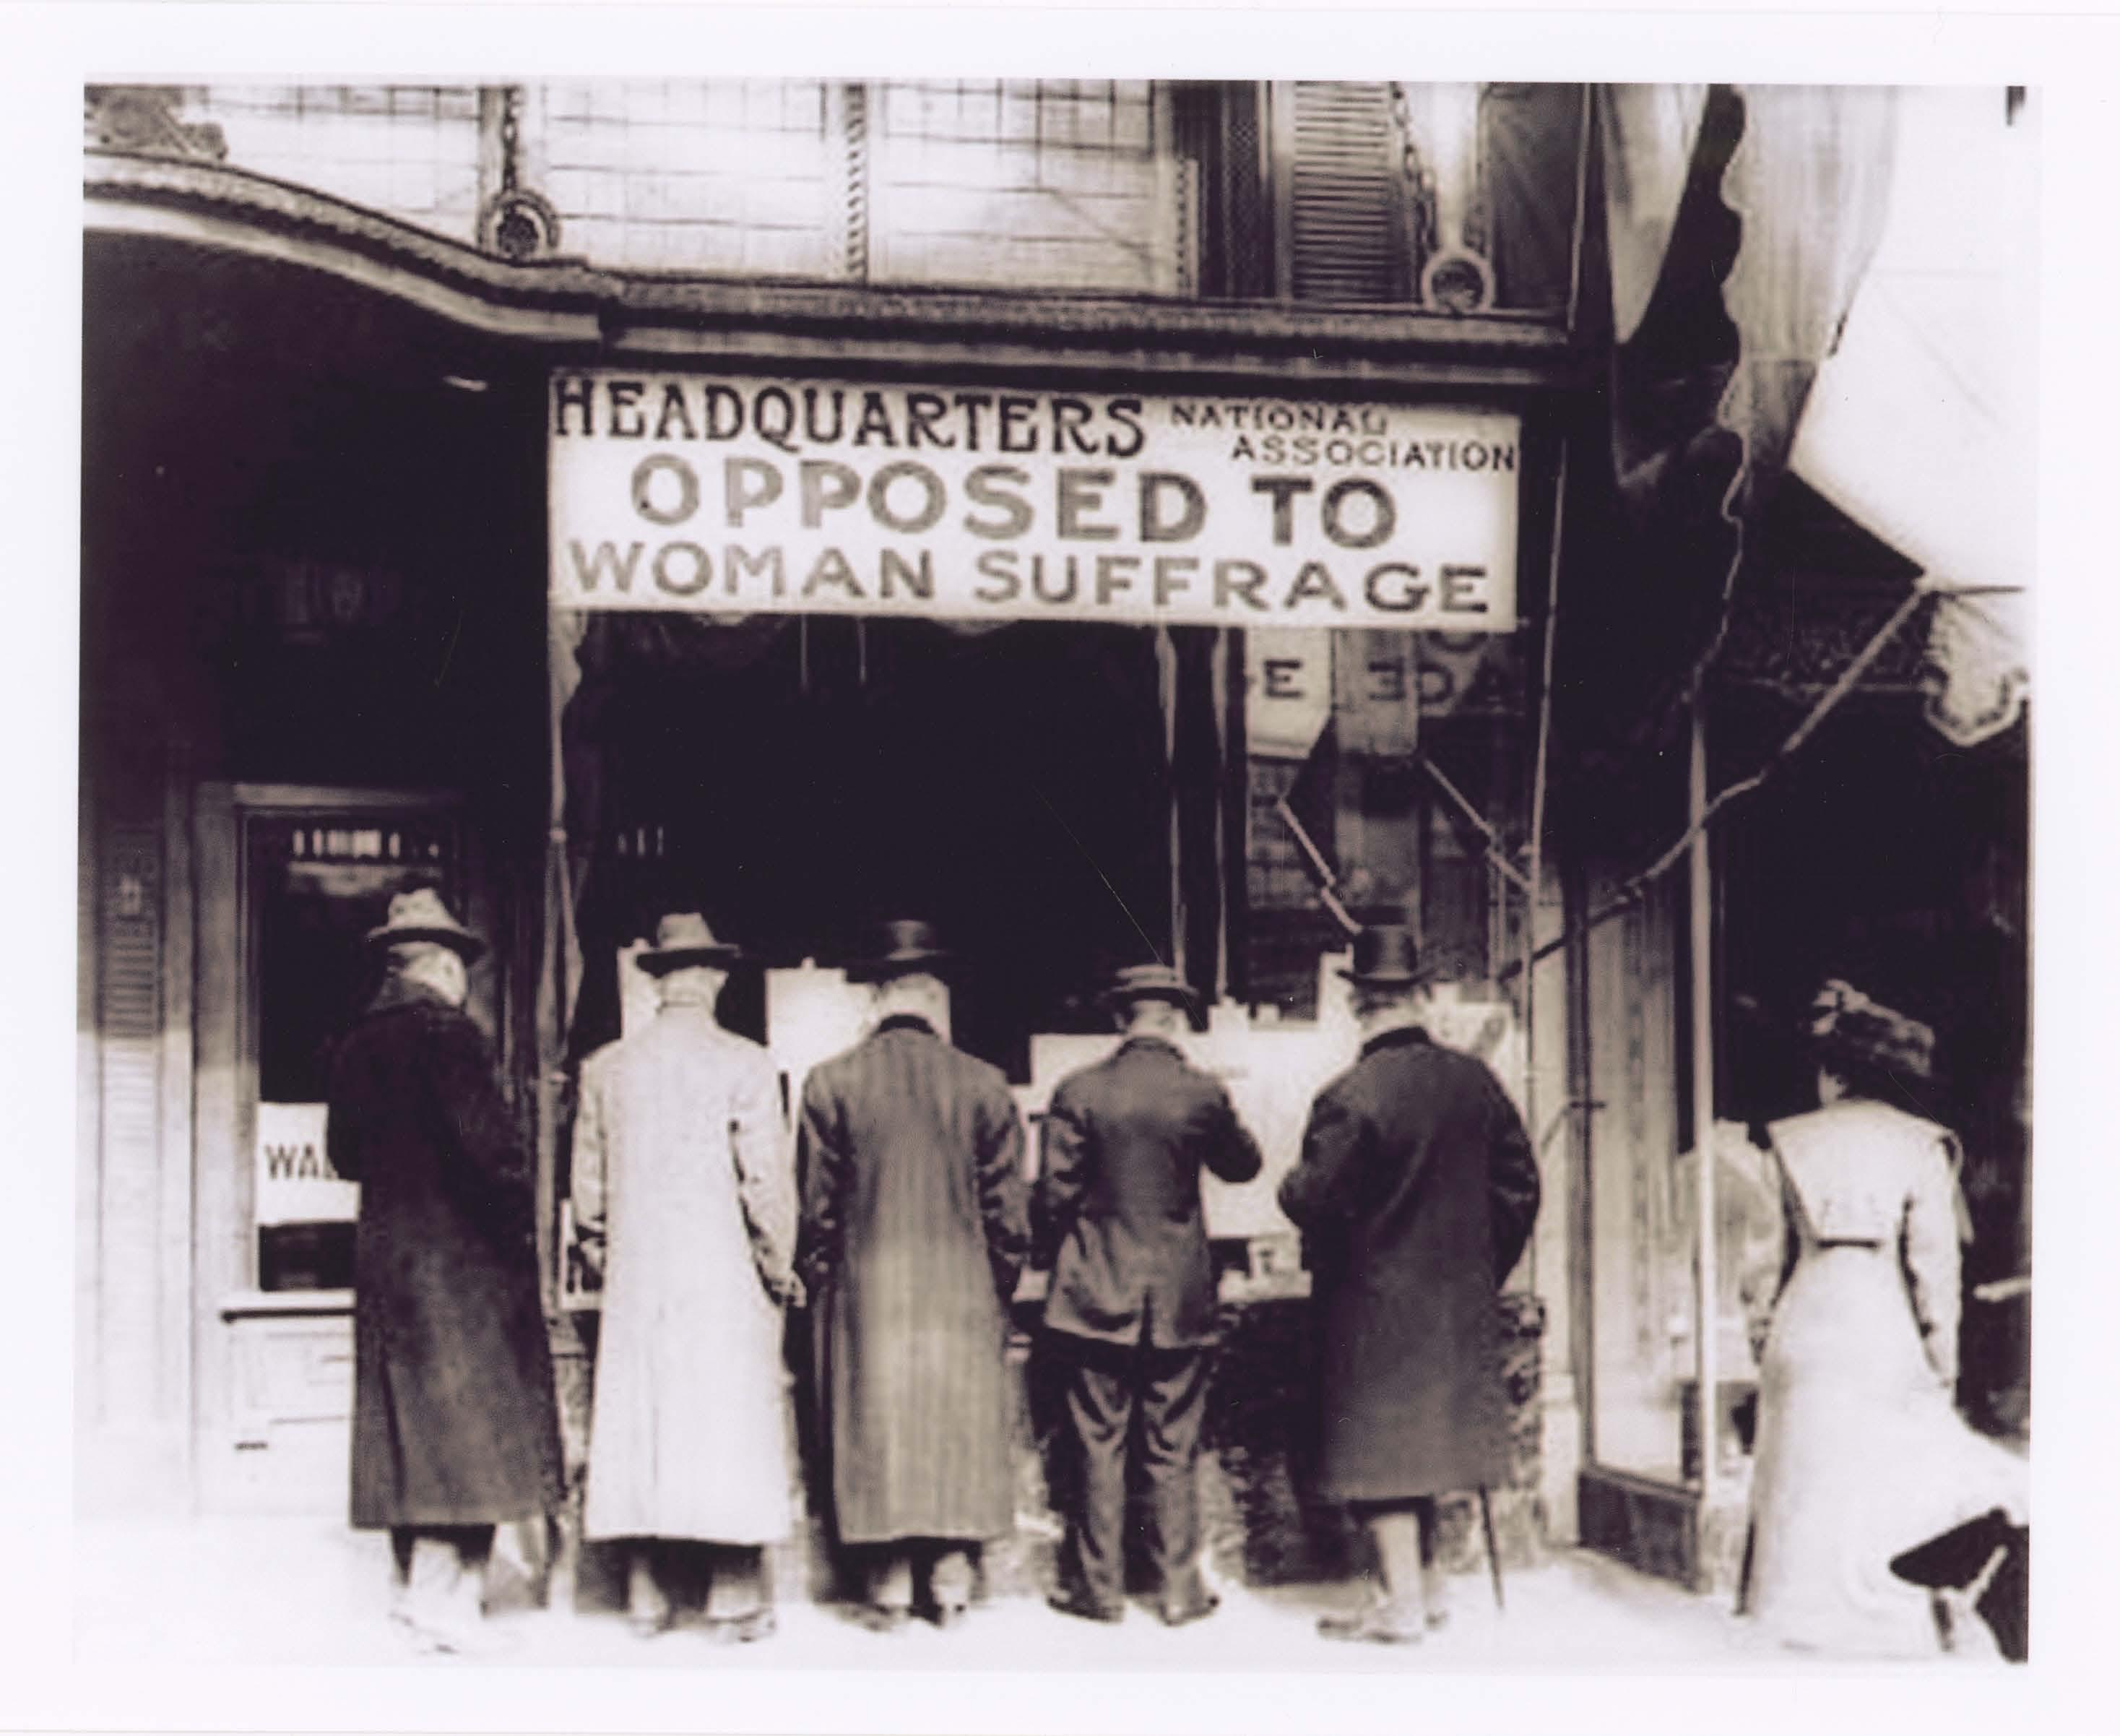 Not every woman supported Suffrage.